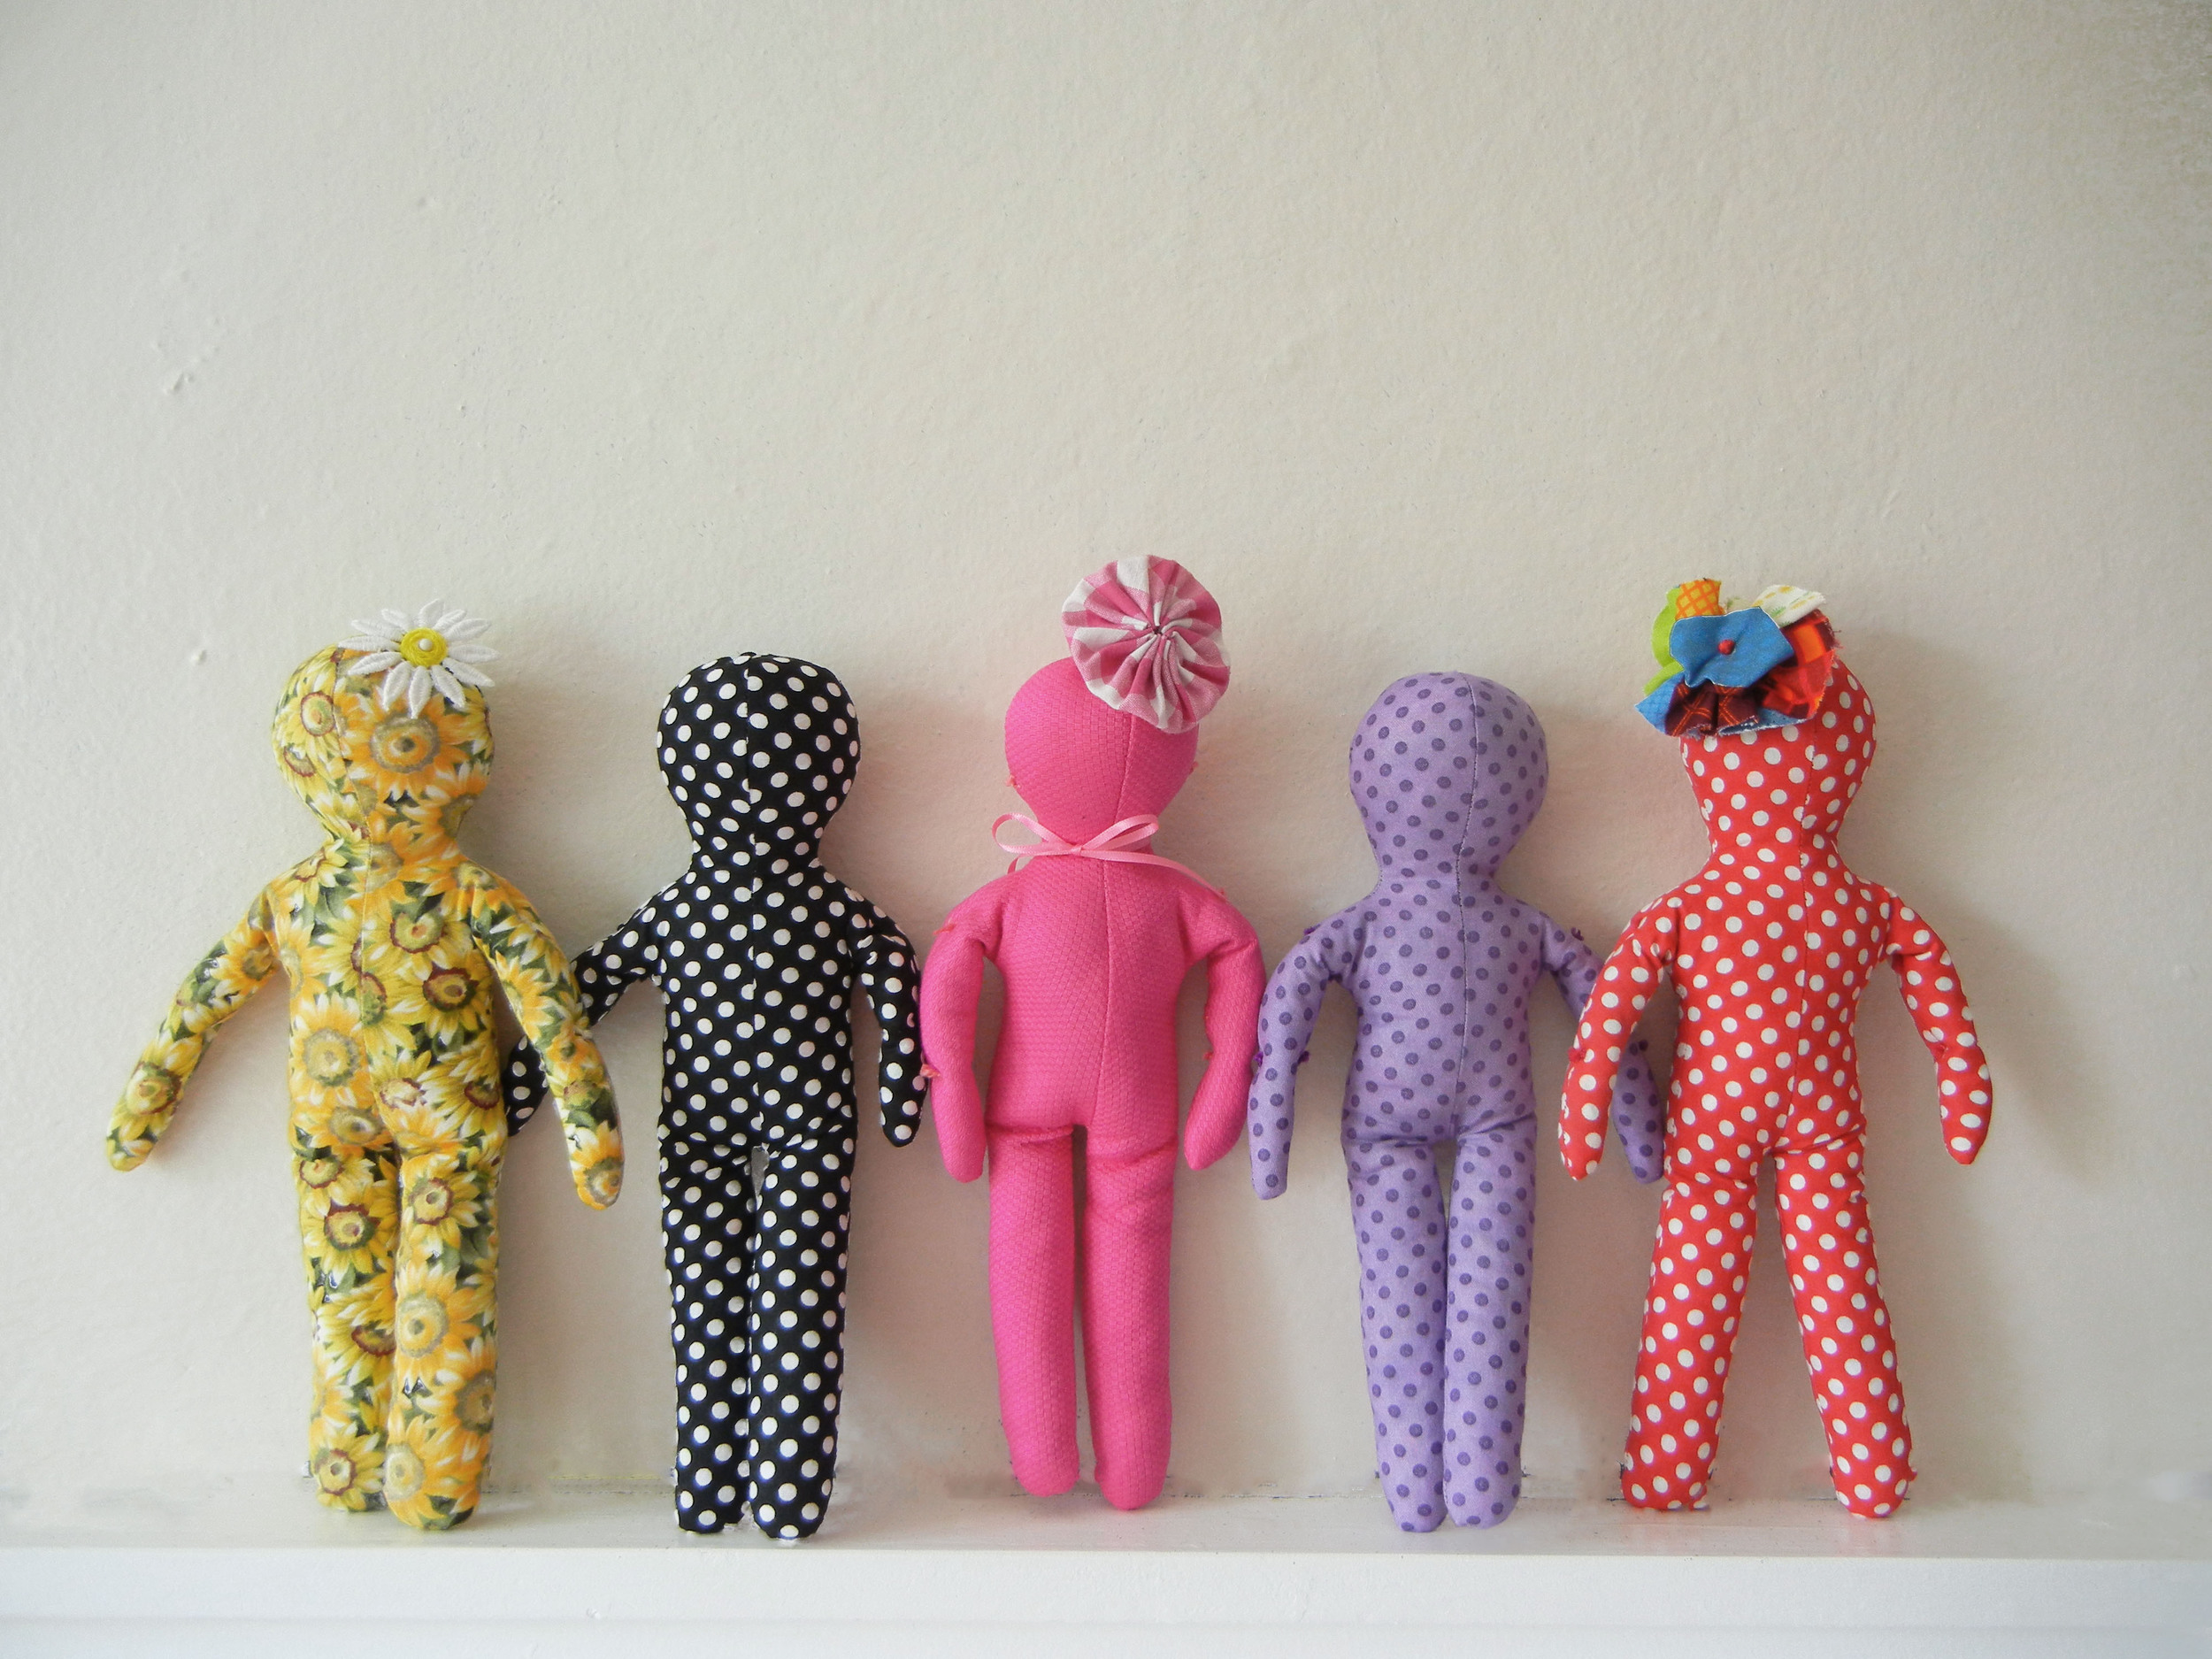 Five Small Dolls.jpg